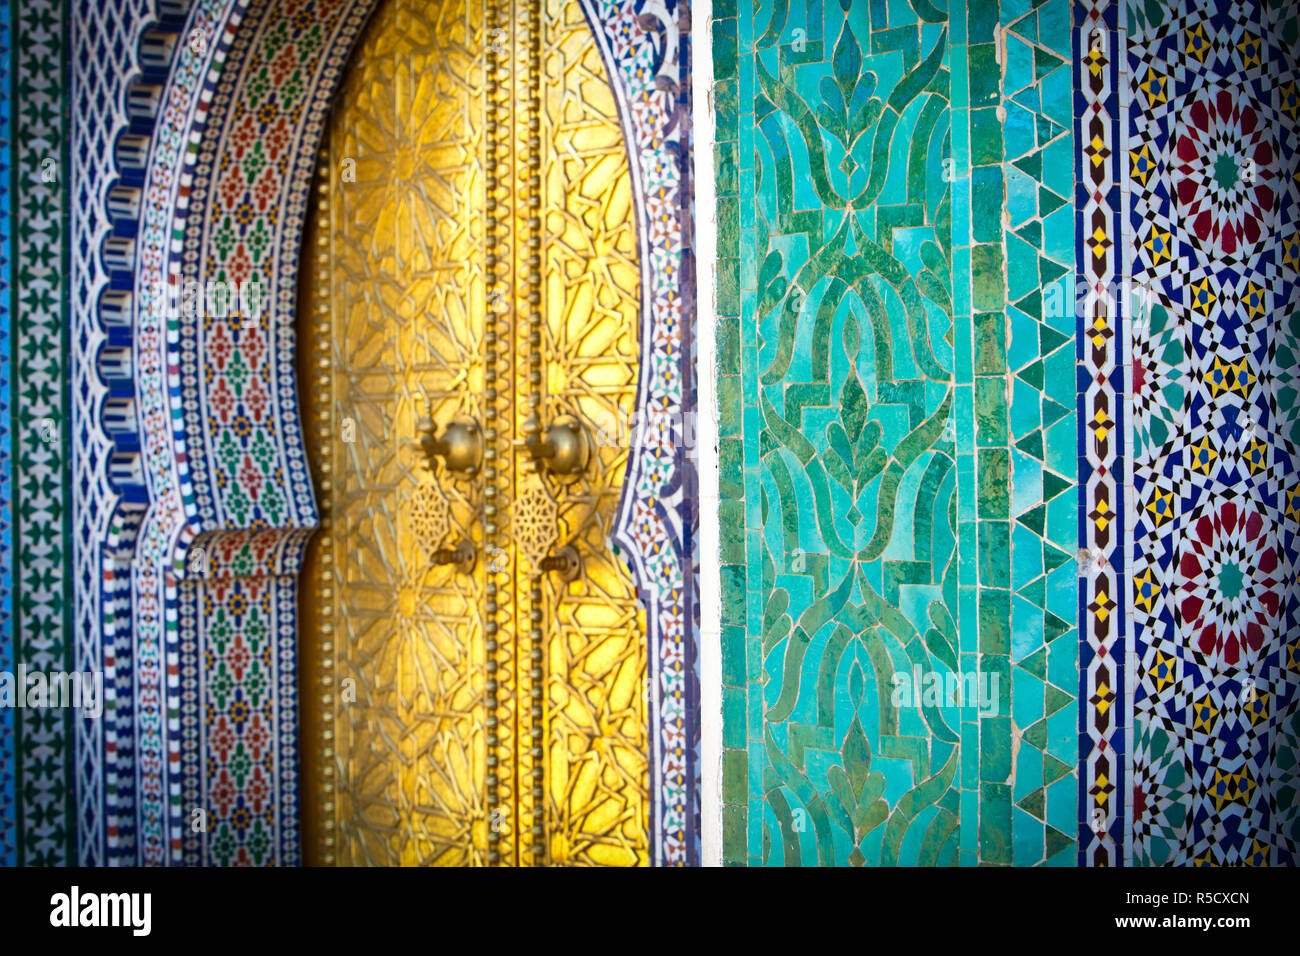 Royal Palace Door, Fes, Morocco - Stock Image